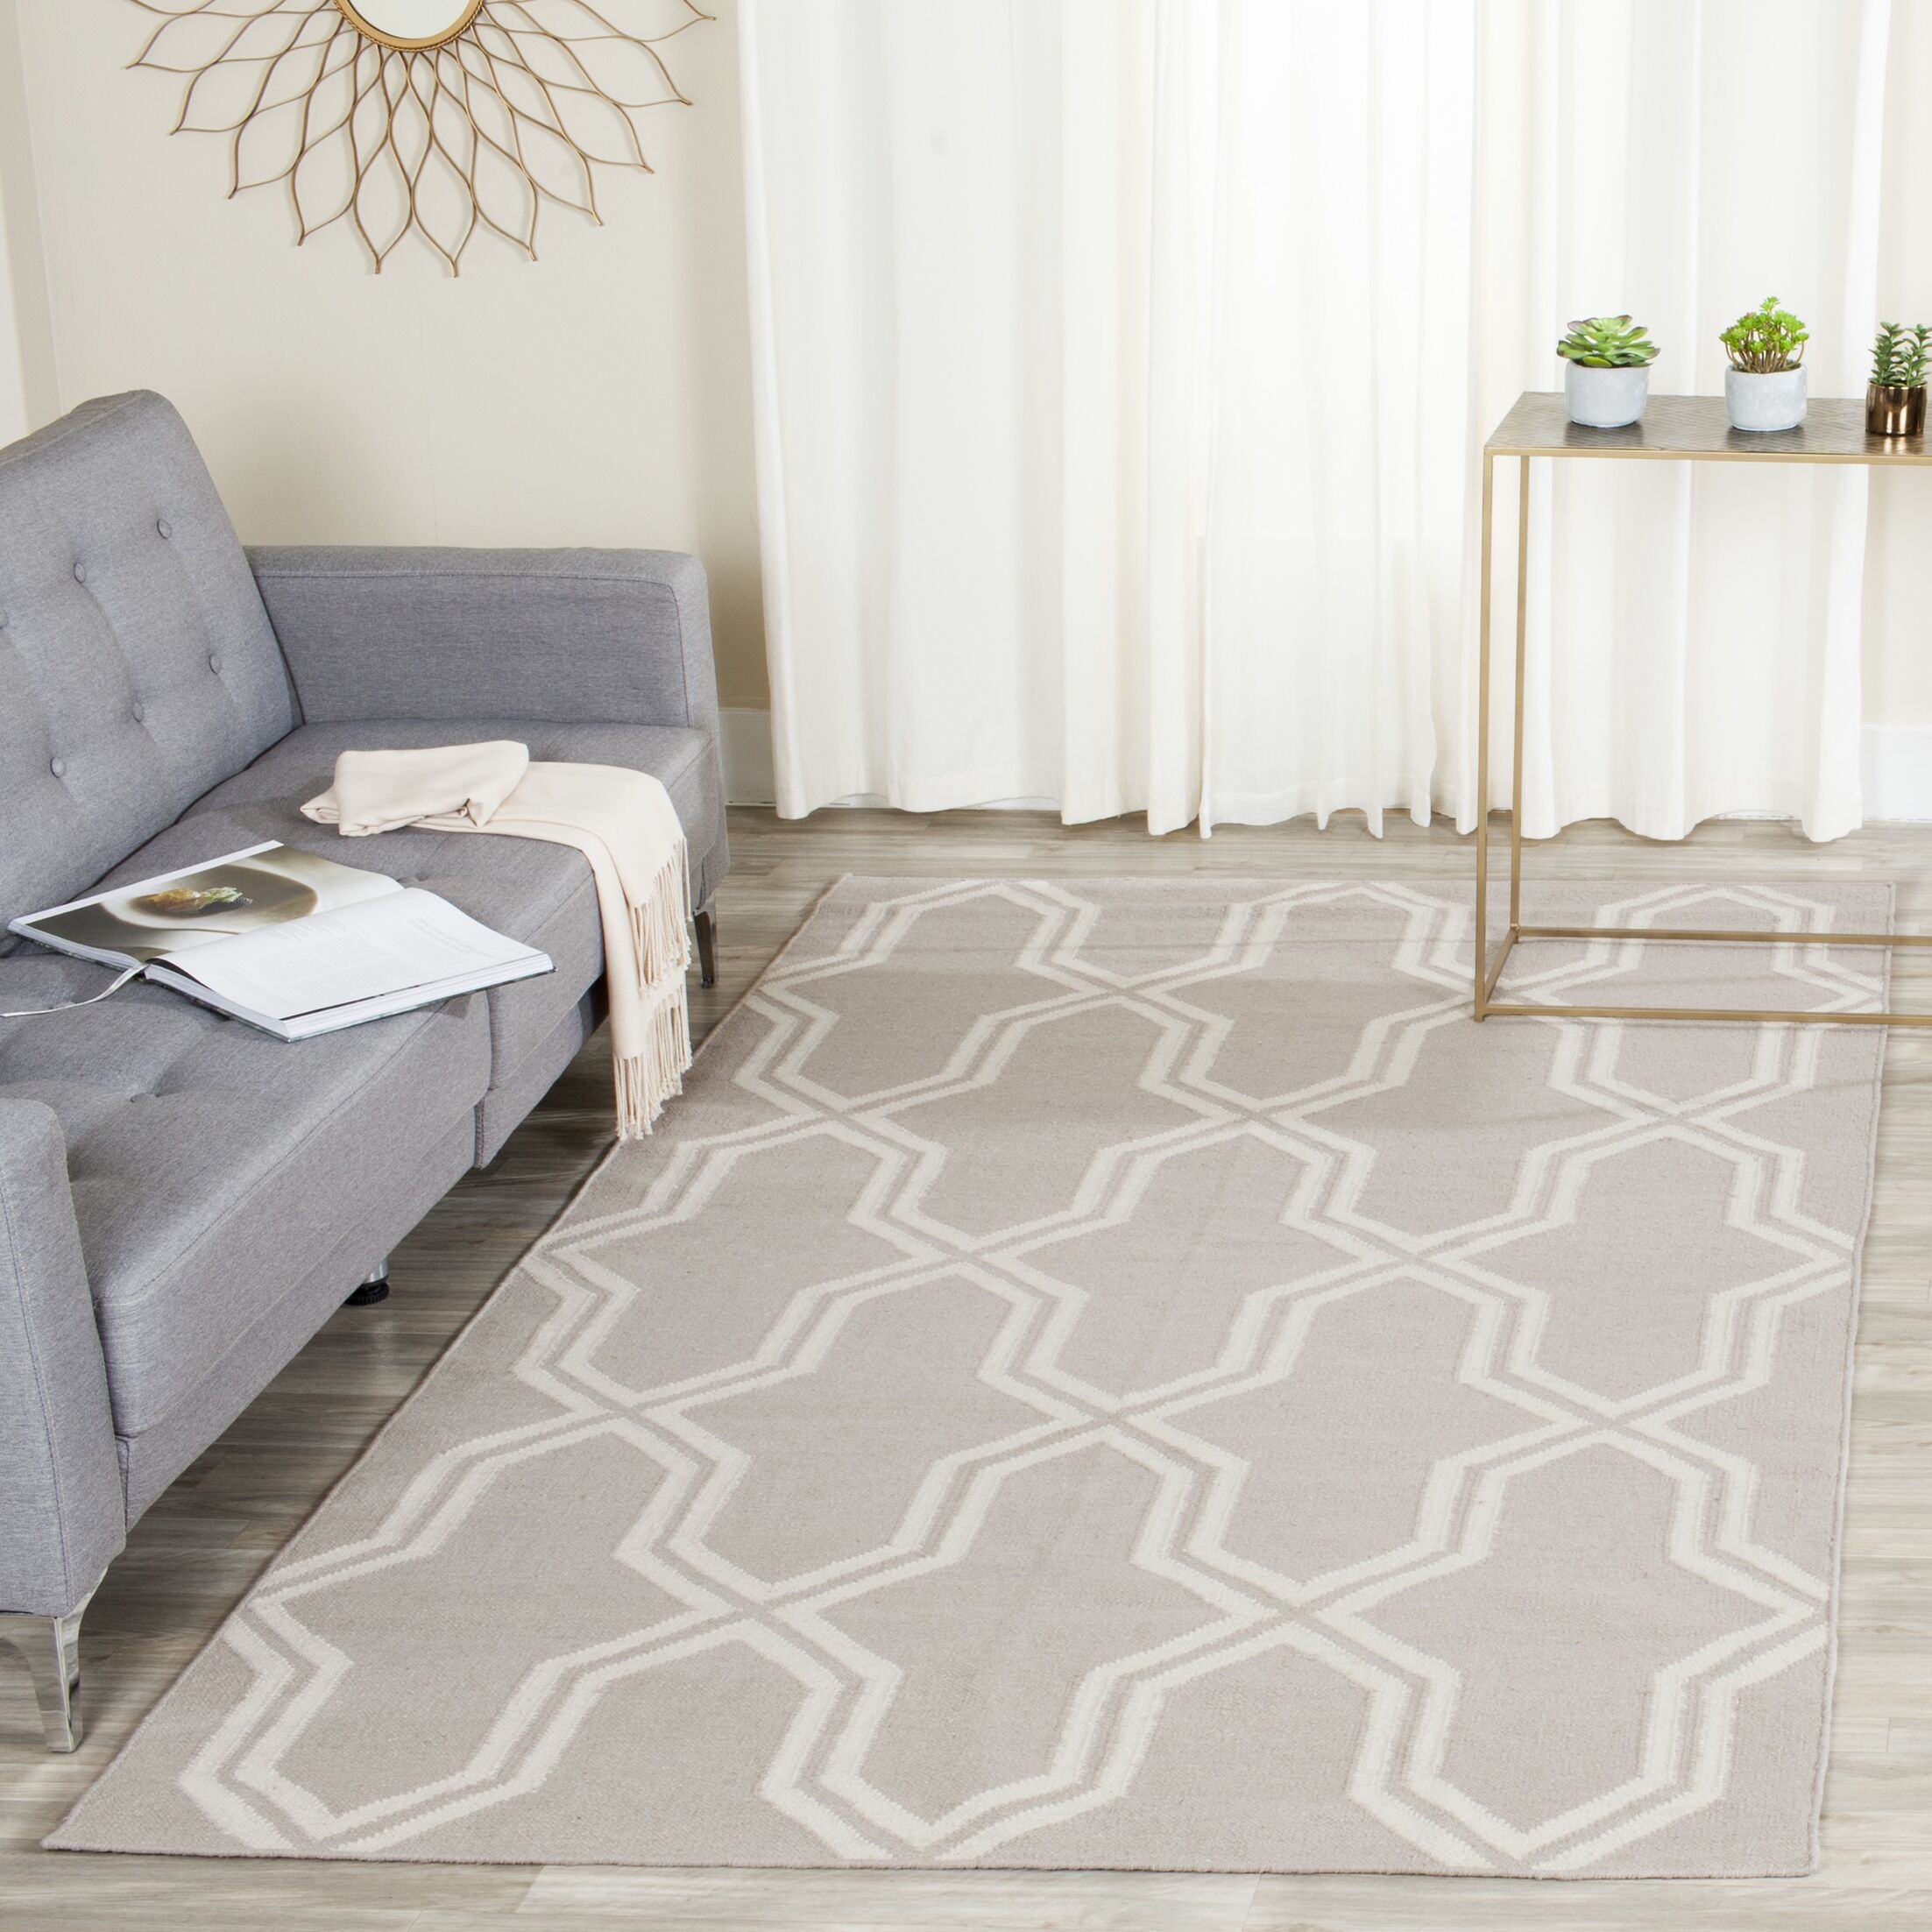 Dhurries Hand-Woven Wool Gray/Ivory Area Rug Rug Size: Rectangle 6' x 9'